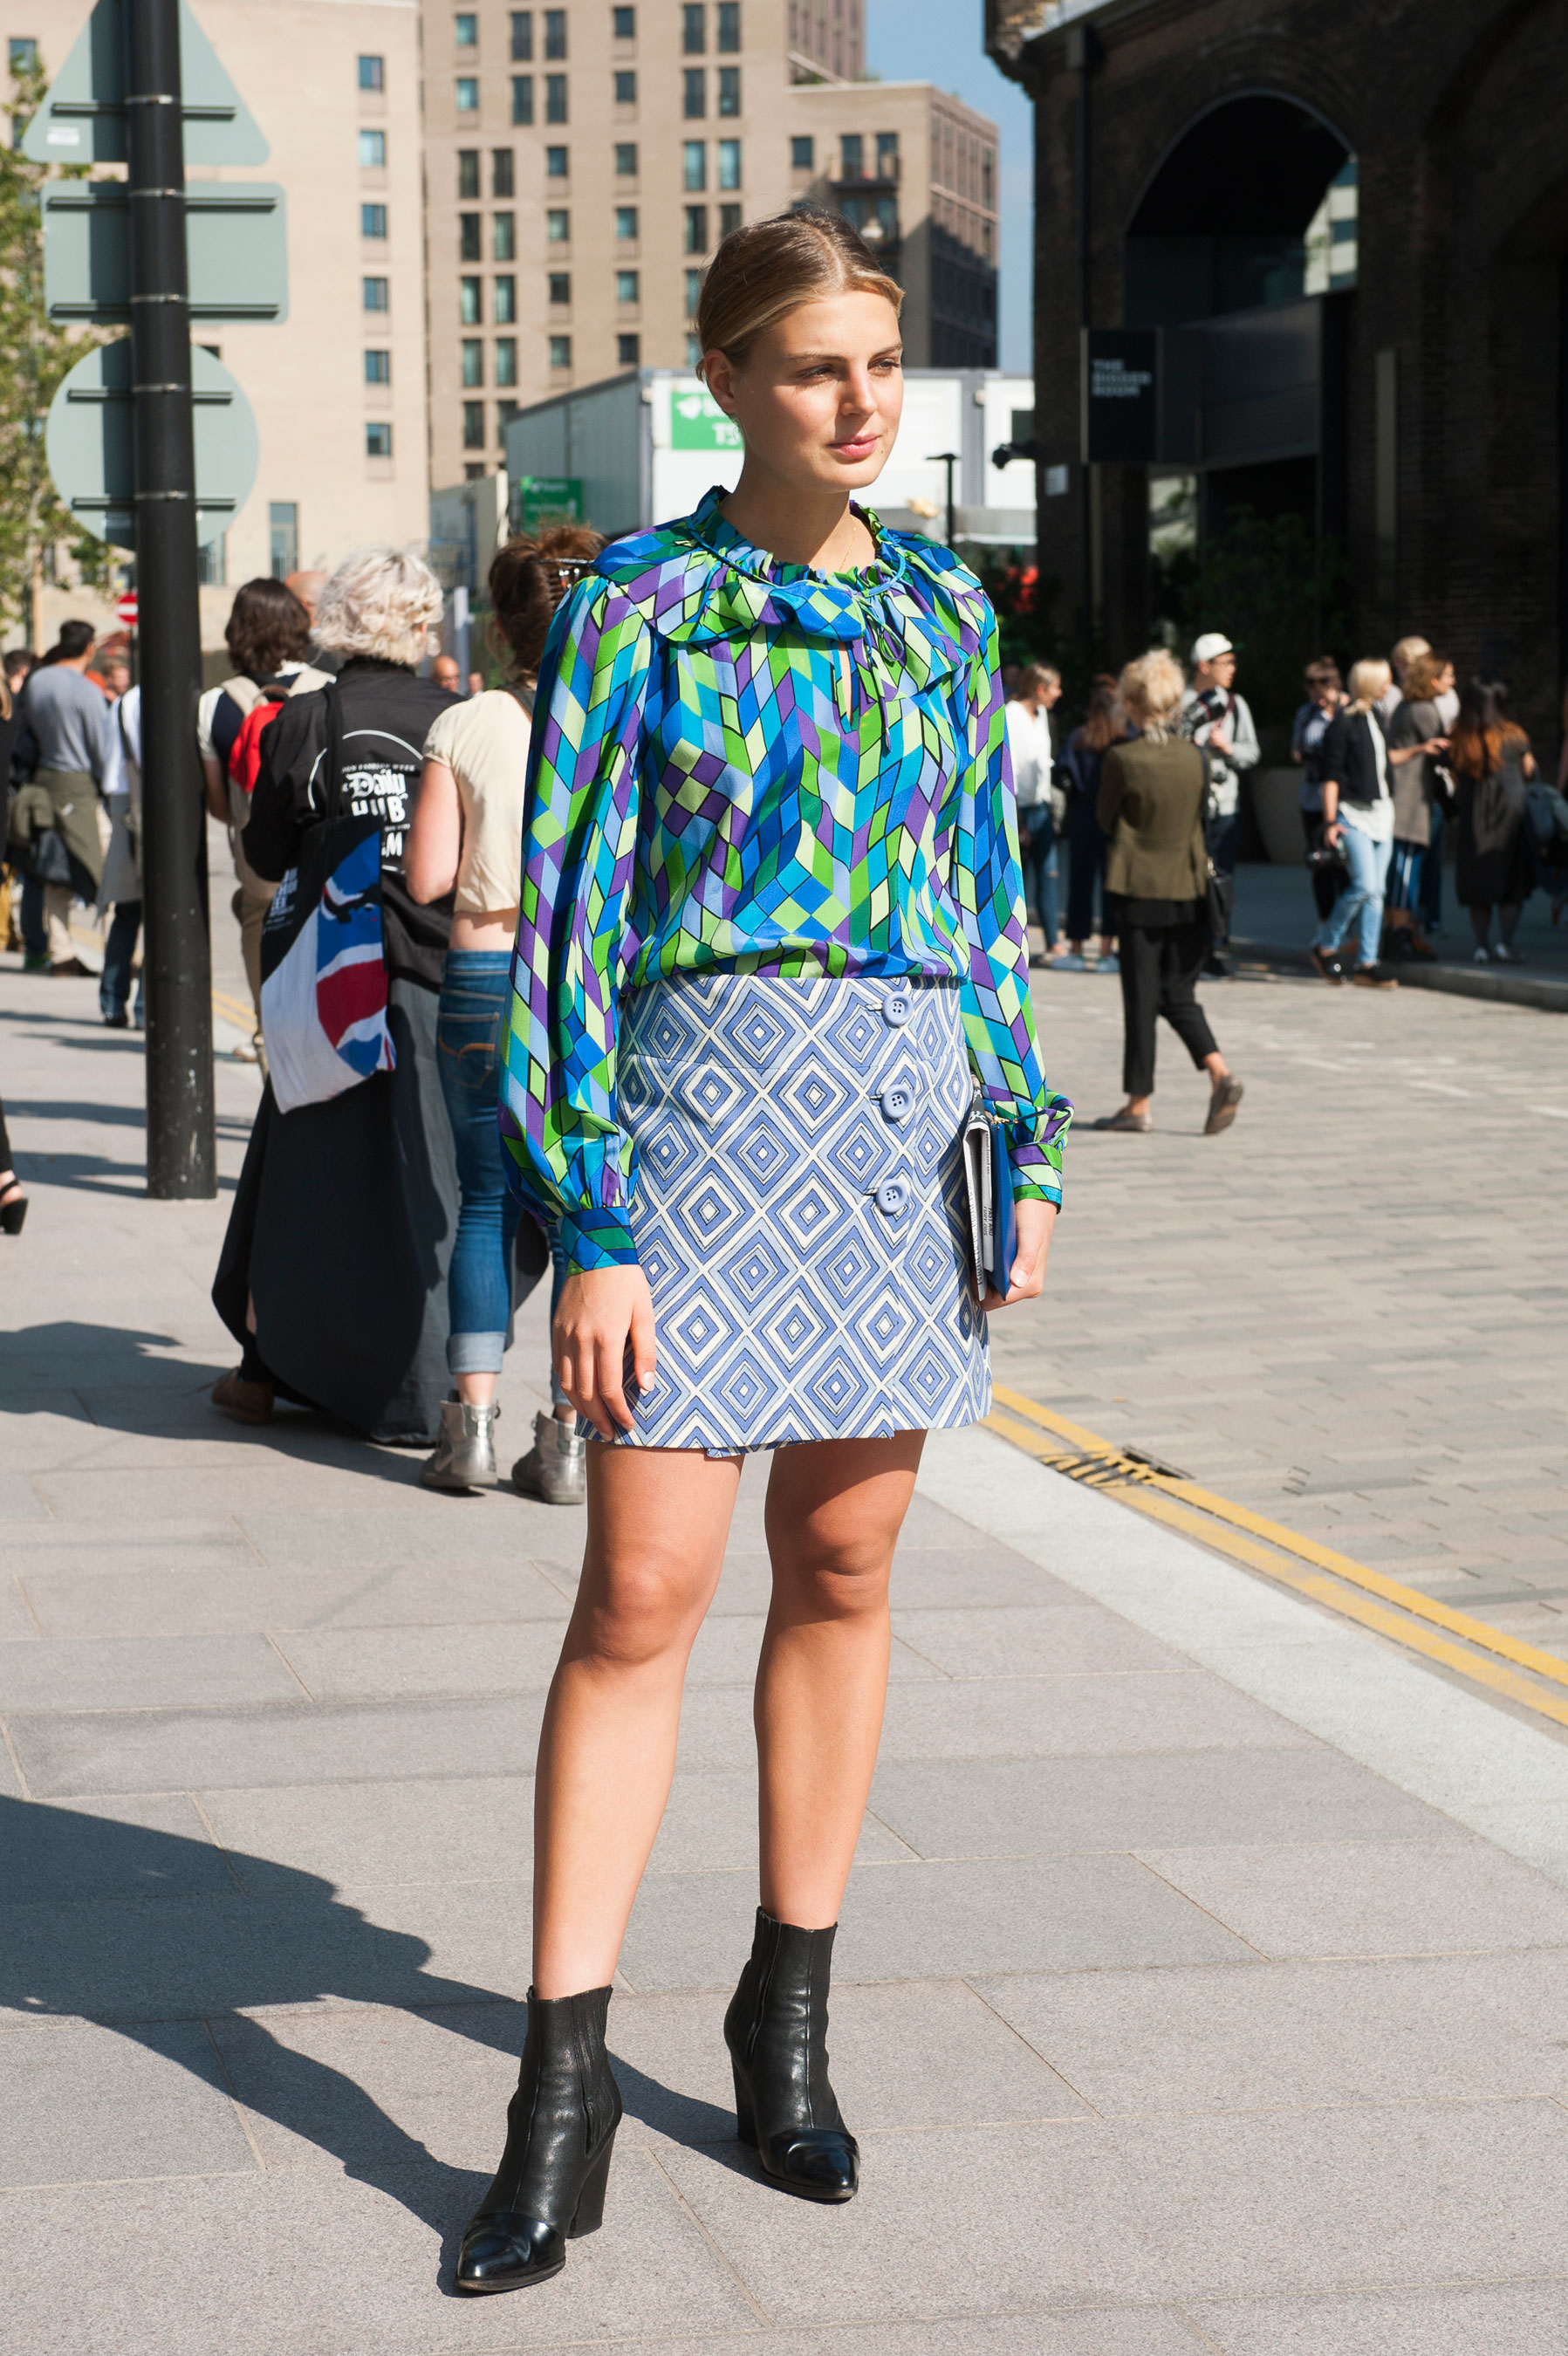 London fashion week street style day 3 spring 2016 fashion show the impression 049 Girl fashion style london